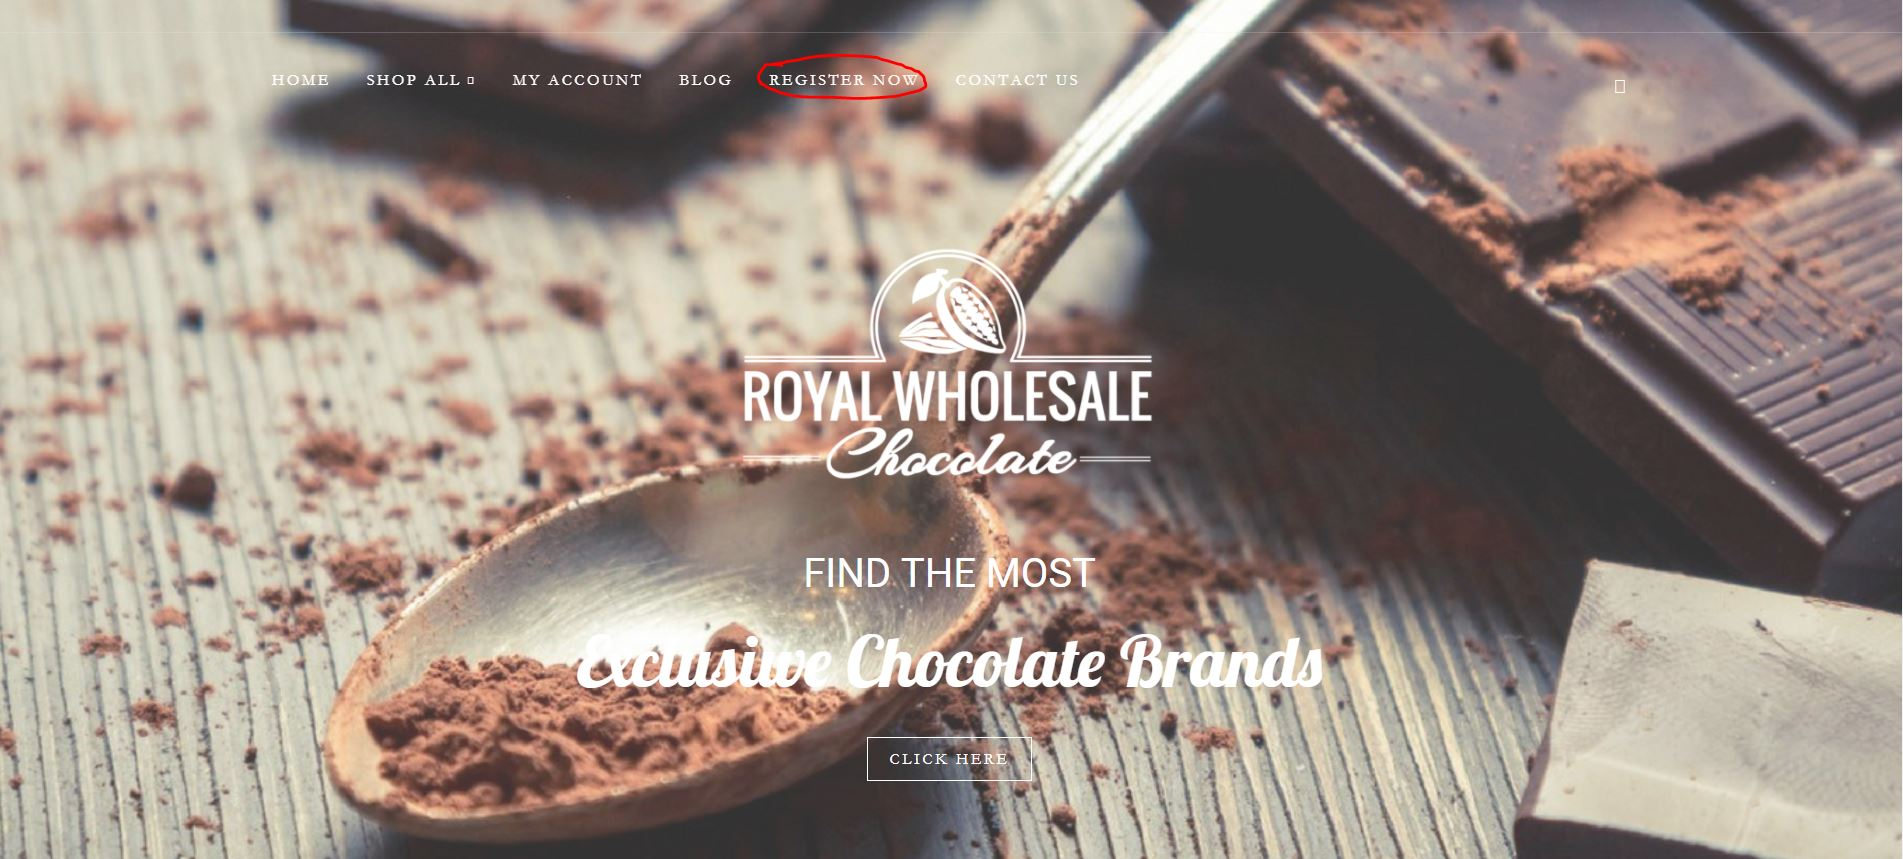 Royal Wholesale Chocolate Register Now